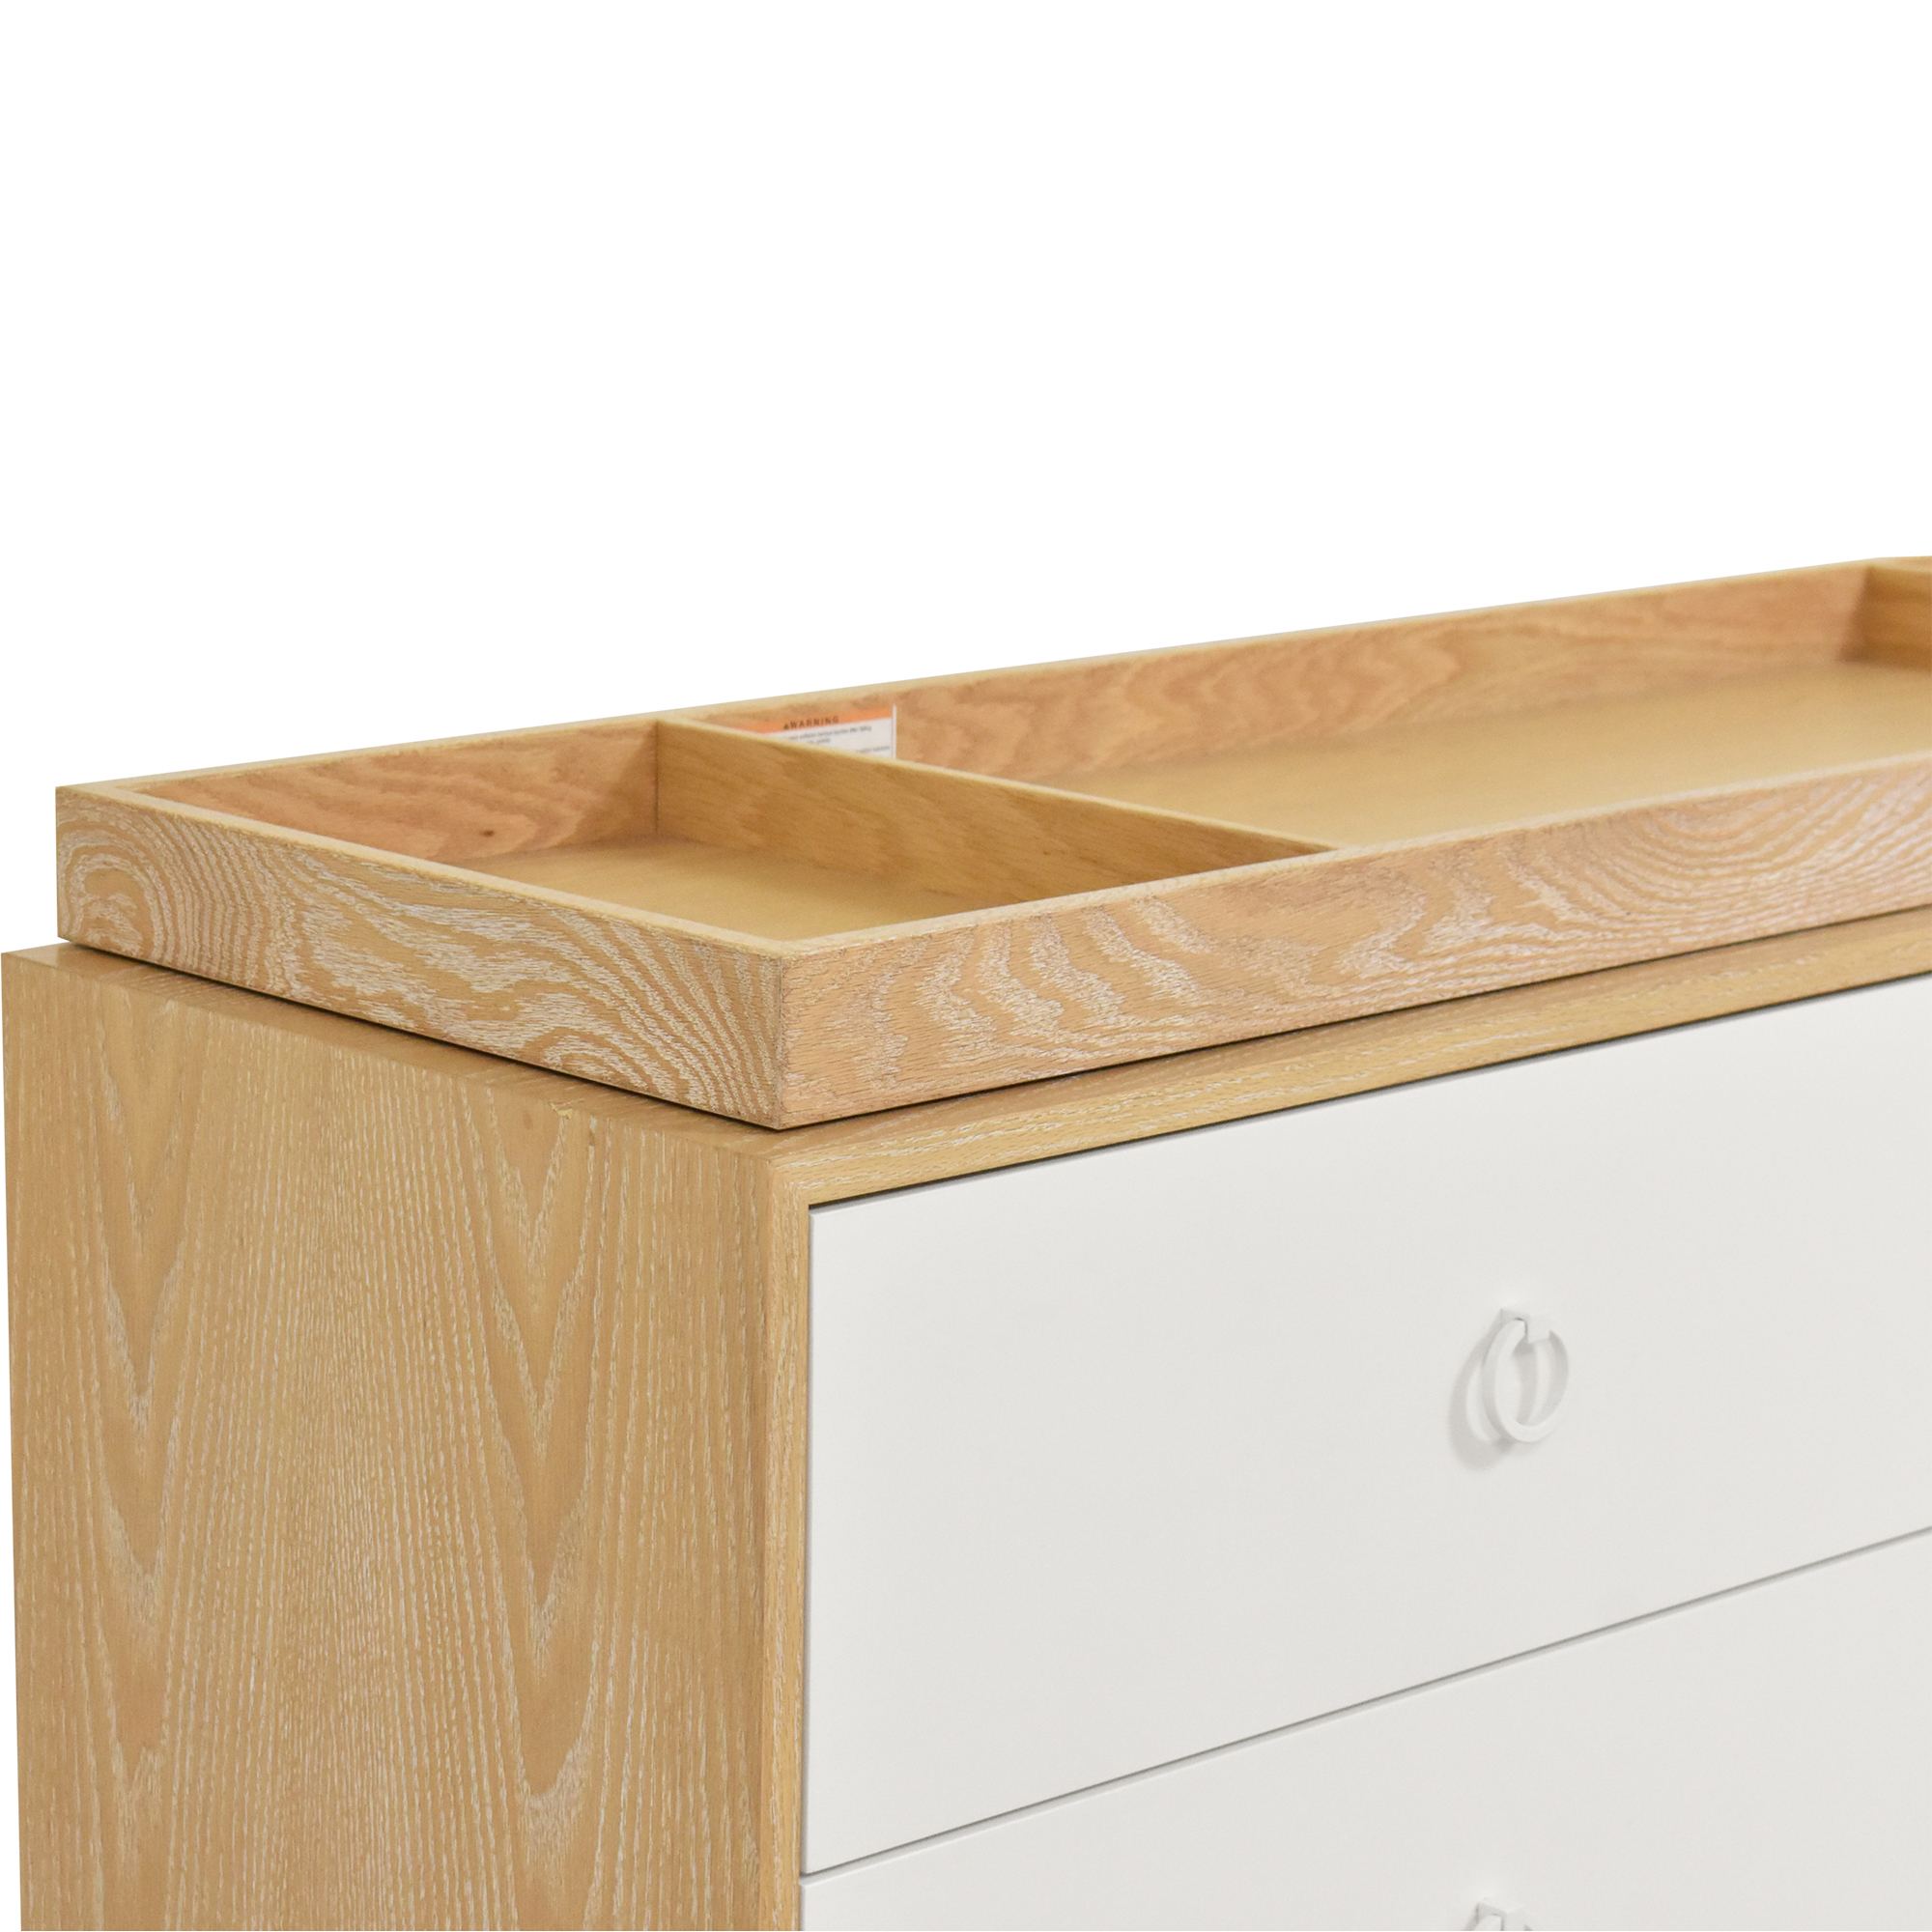 shop ducduc Cabana Doublewide Six Drawer Dresser ducduc